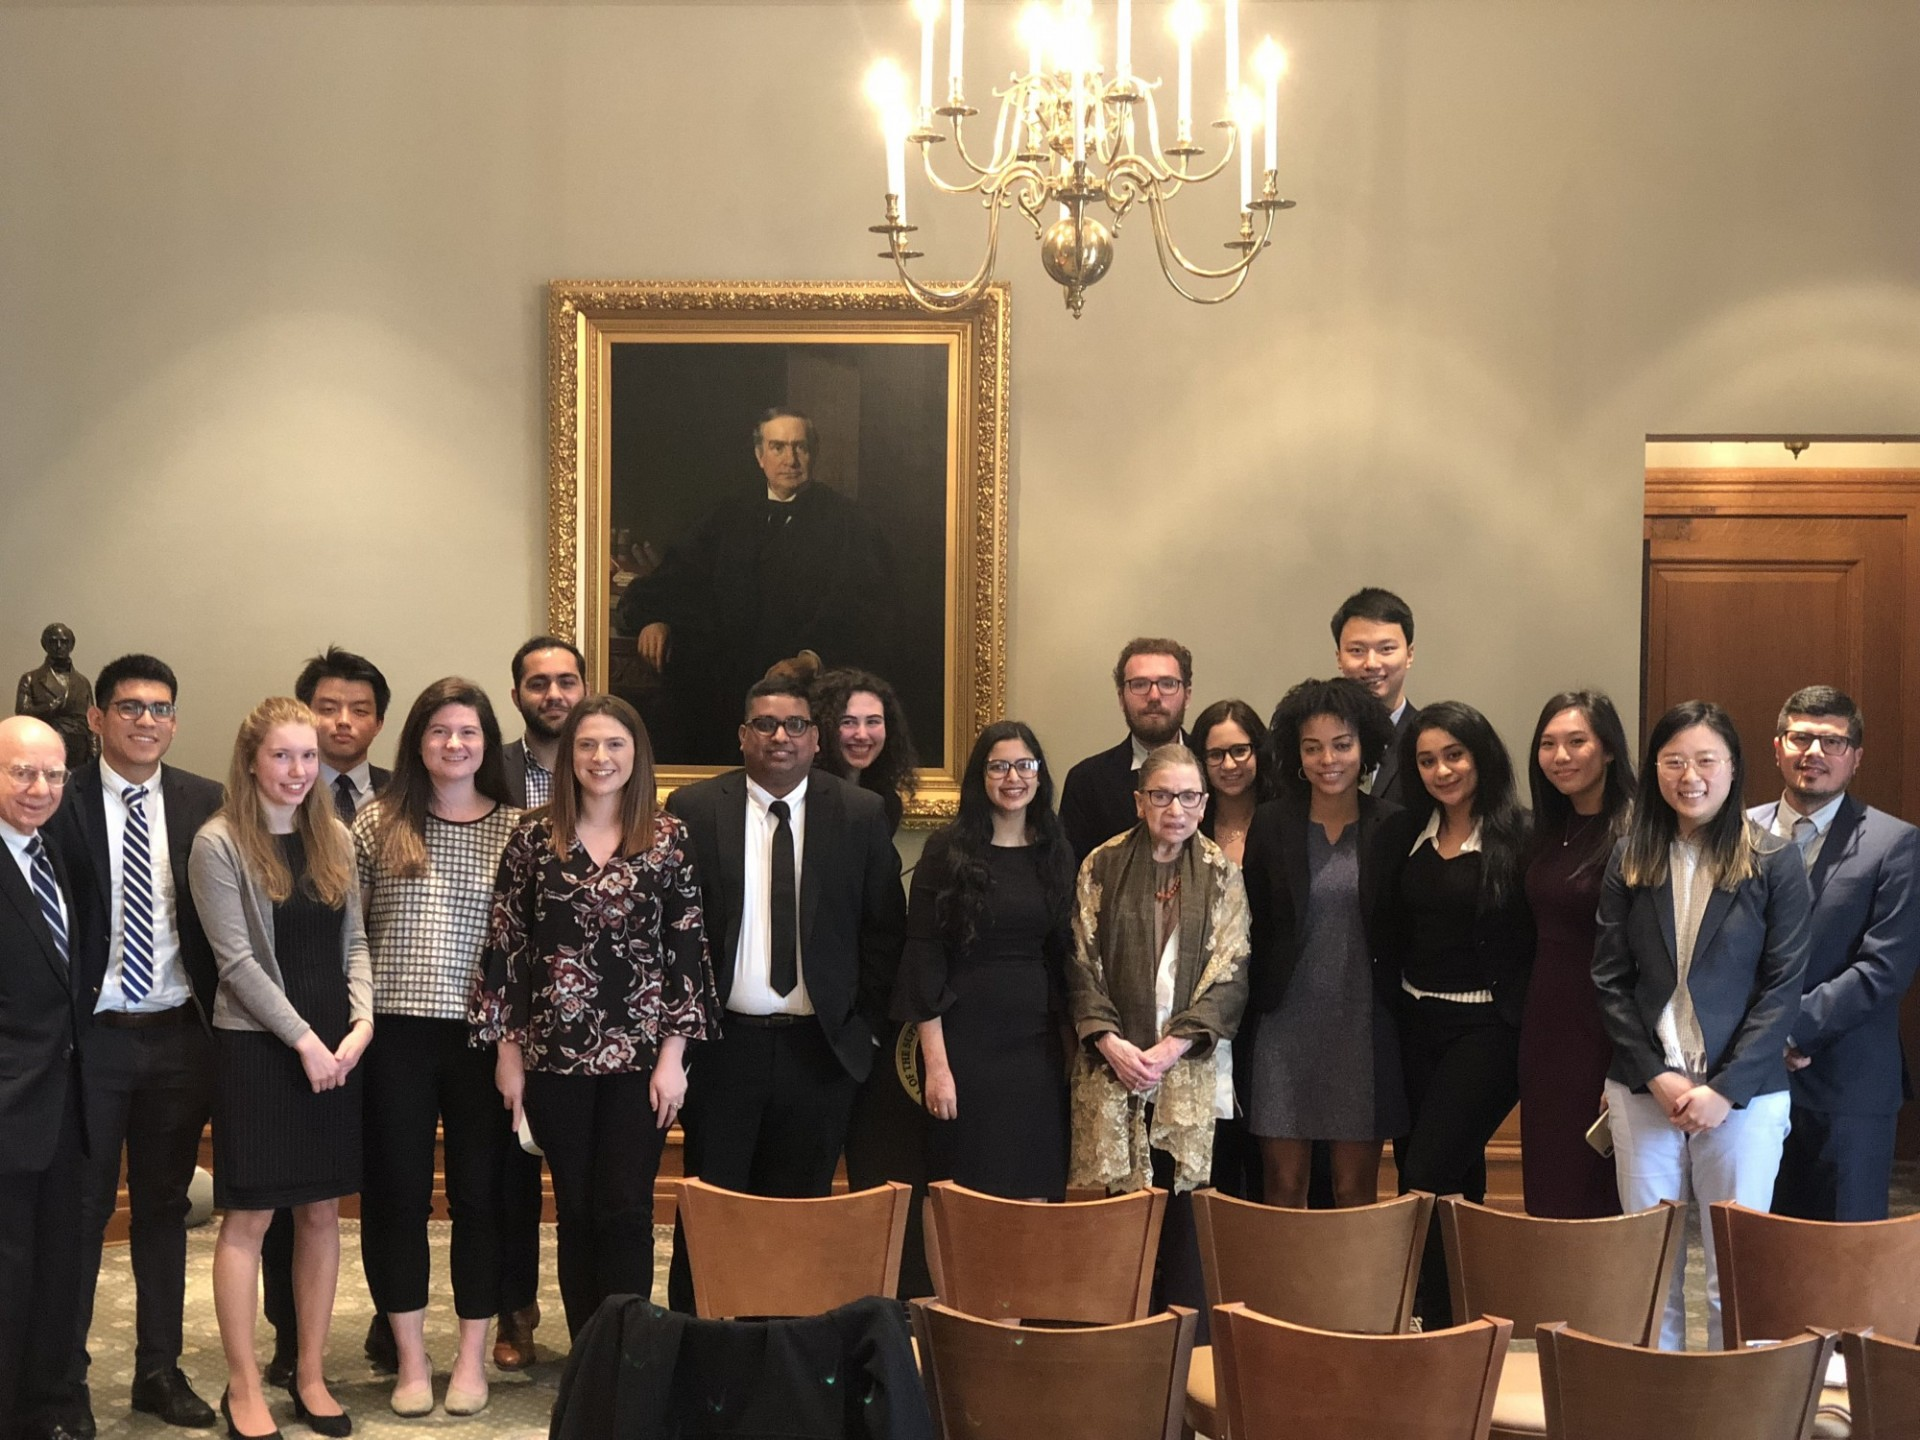 2018 Portrait of Justice Ruth Bader Ginsburg and students at the U.S. Supreme Court